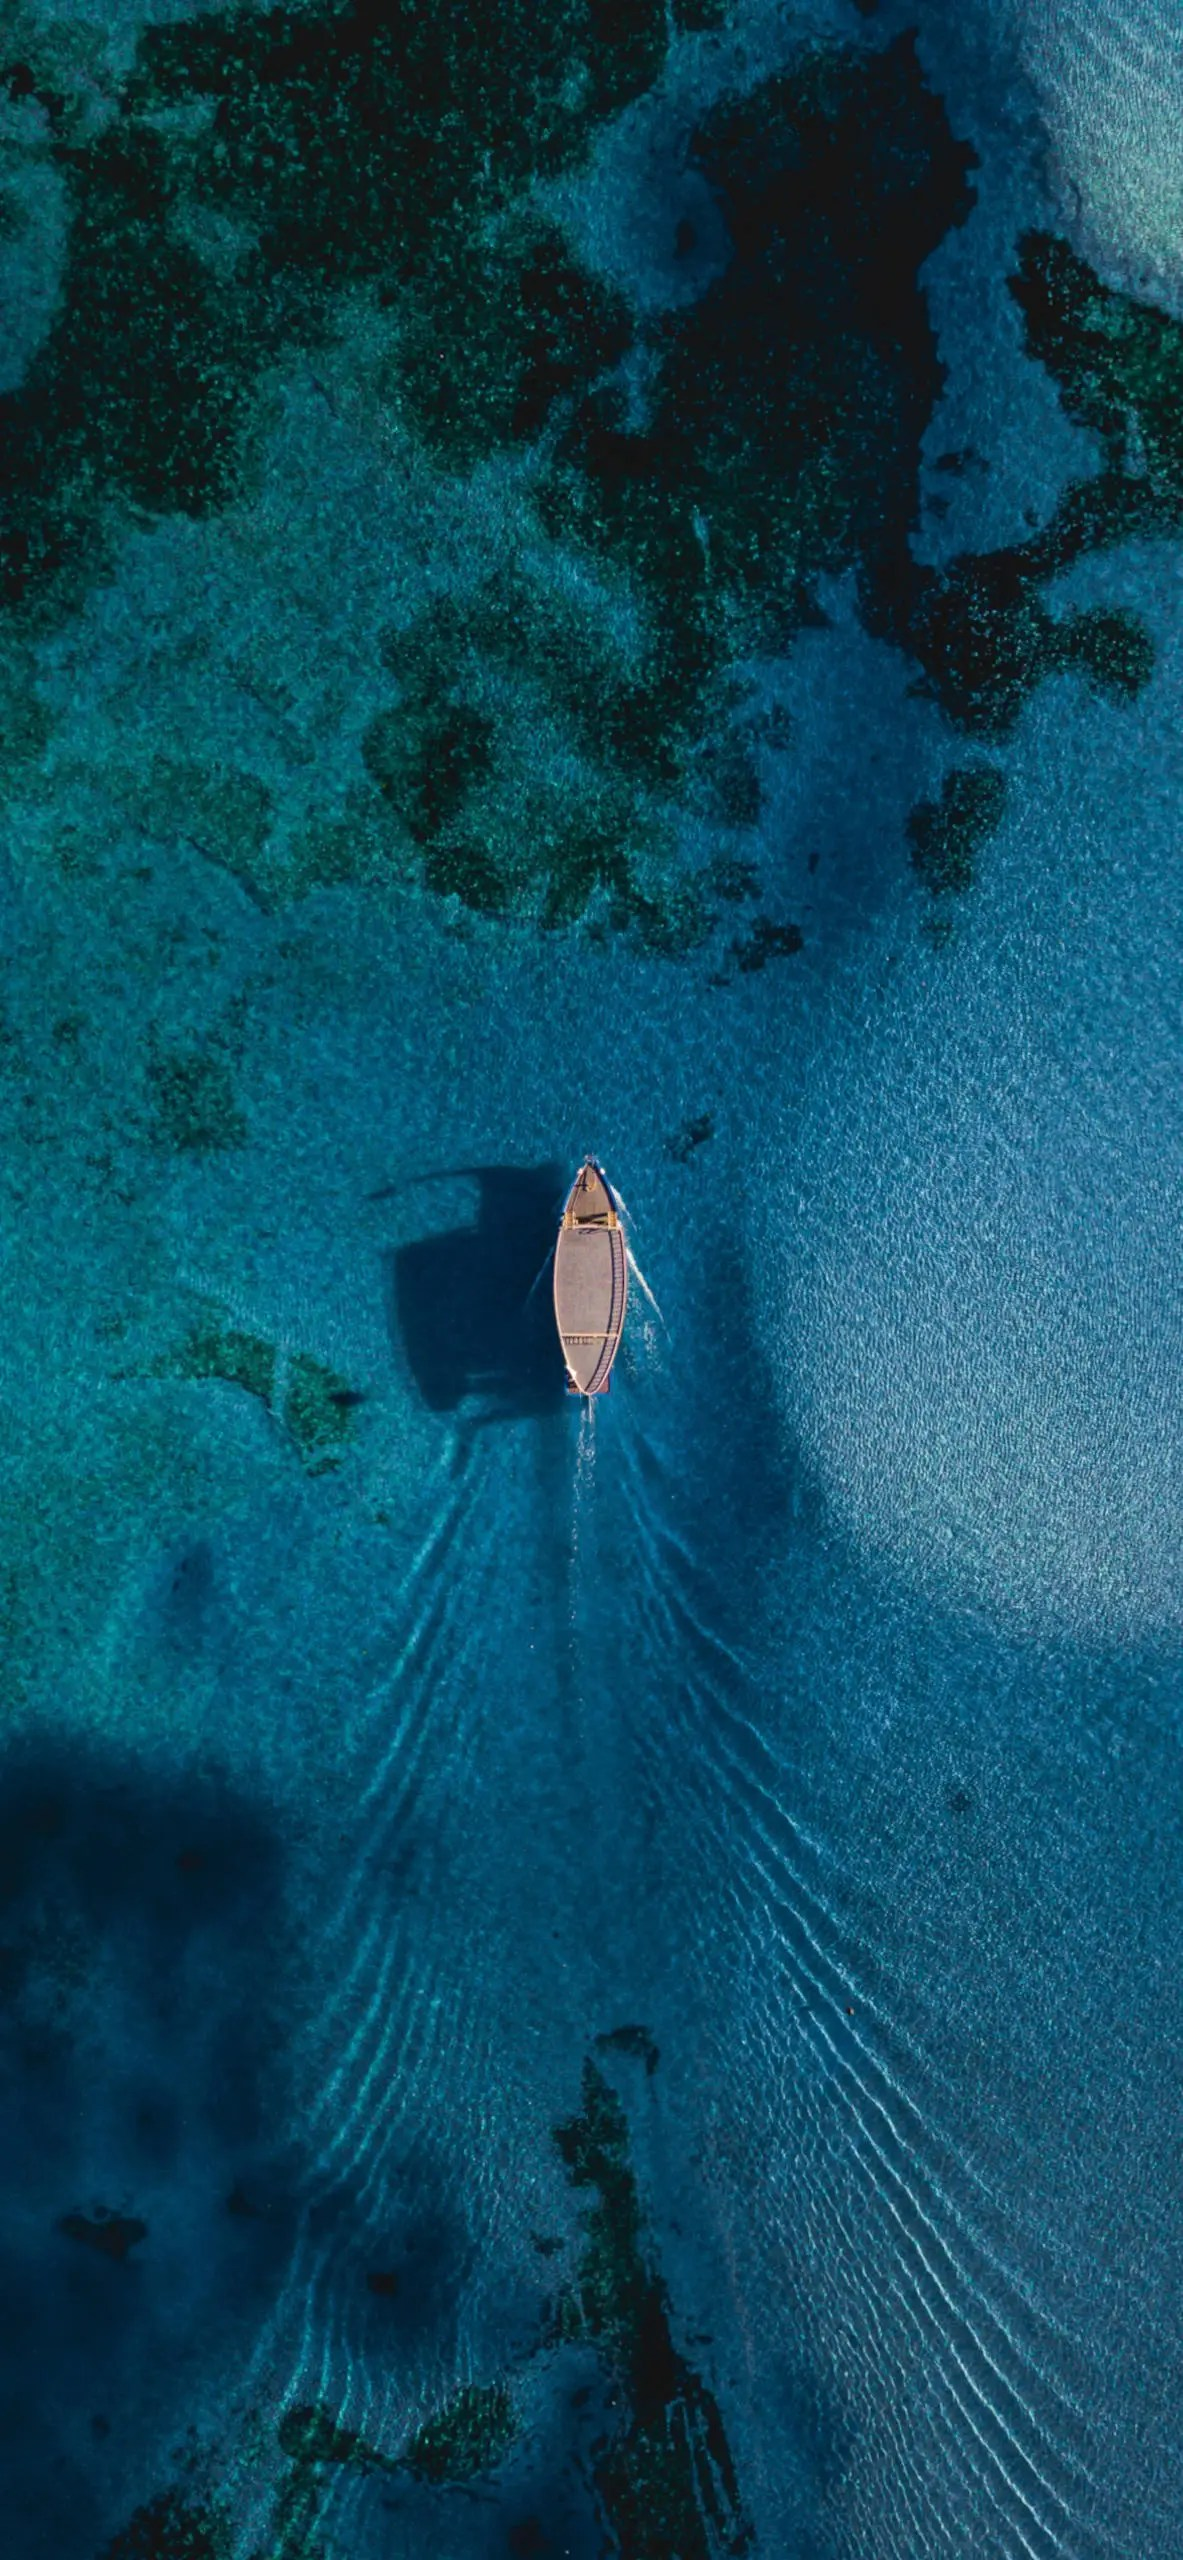 iPhone wallpapers sea ship midle Boats